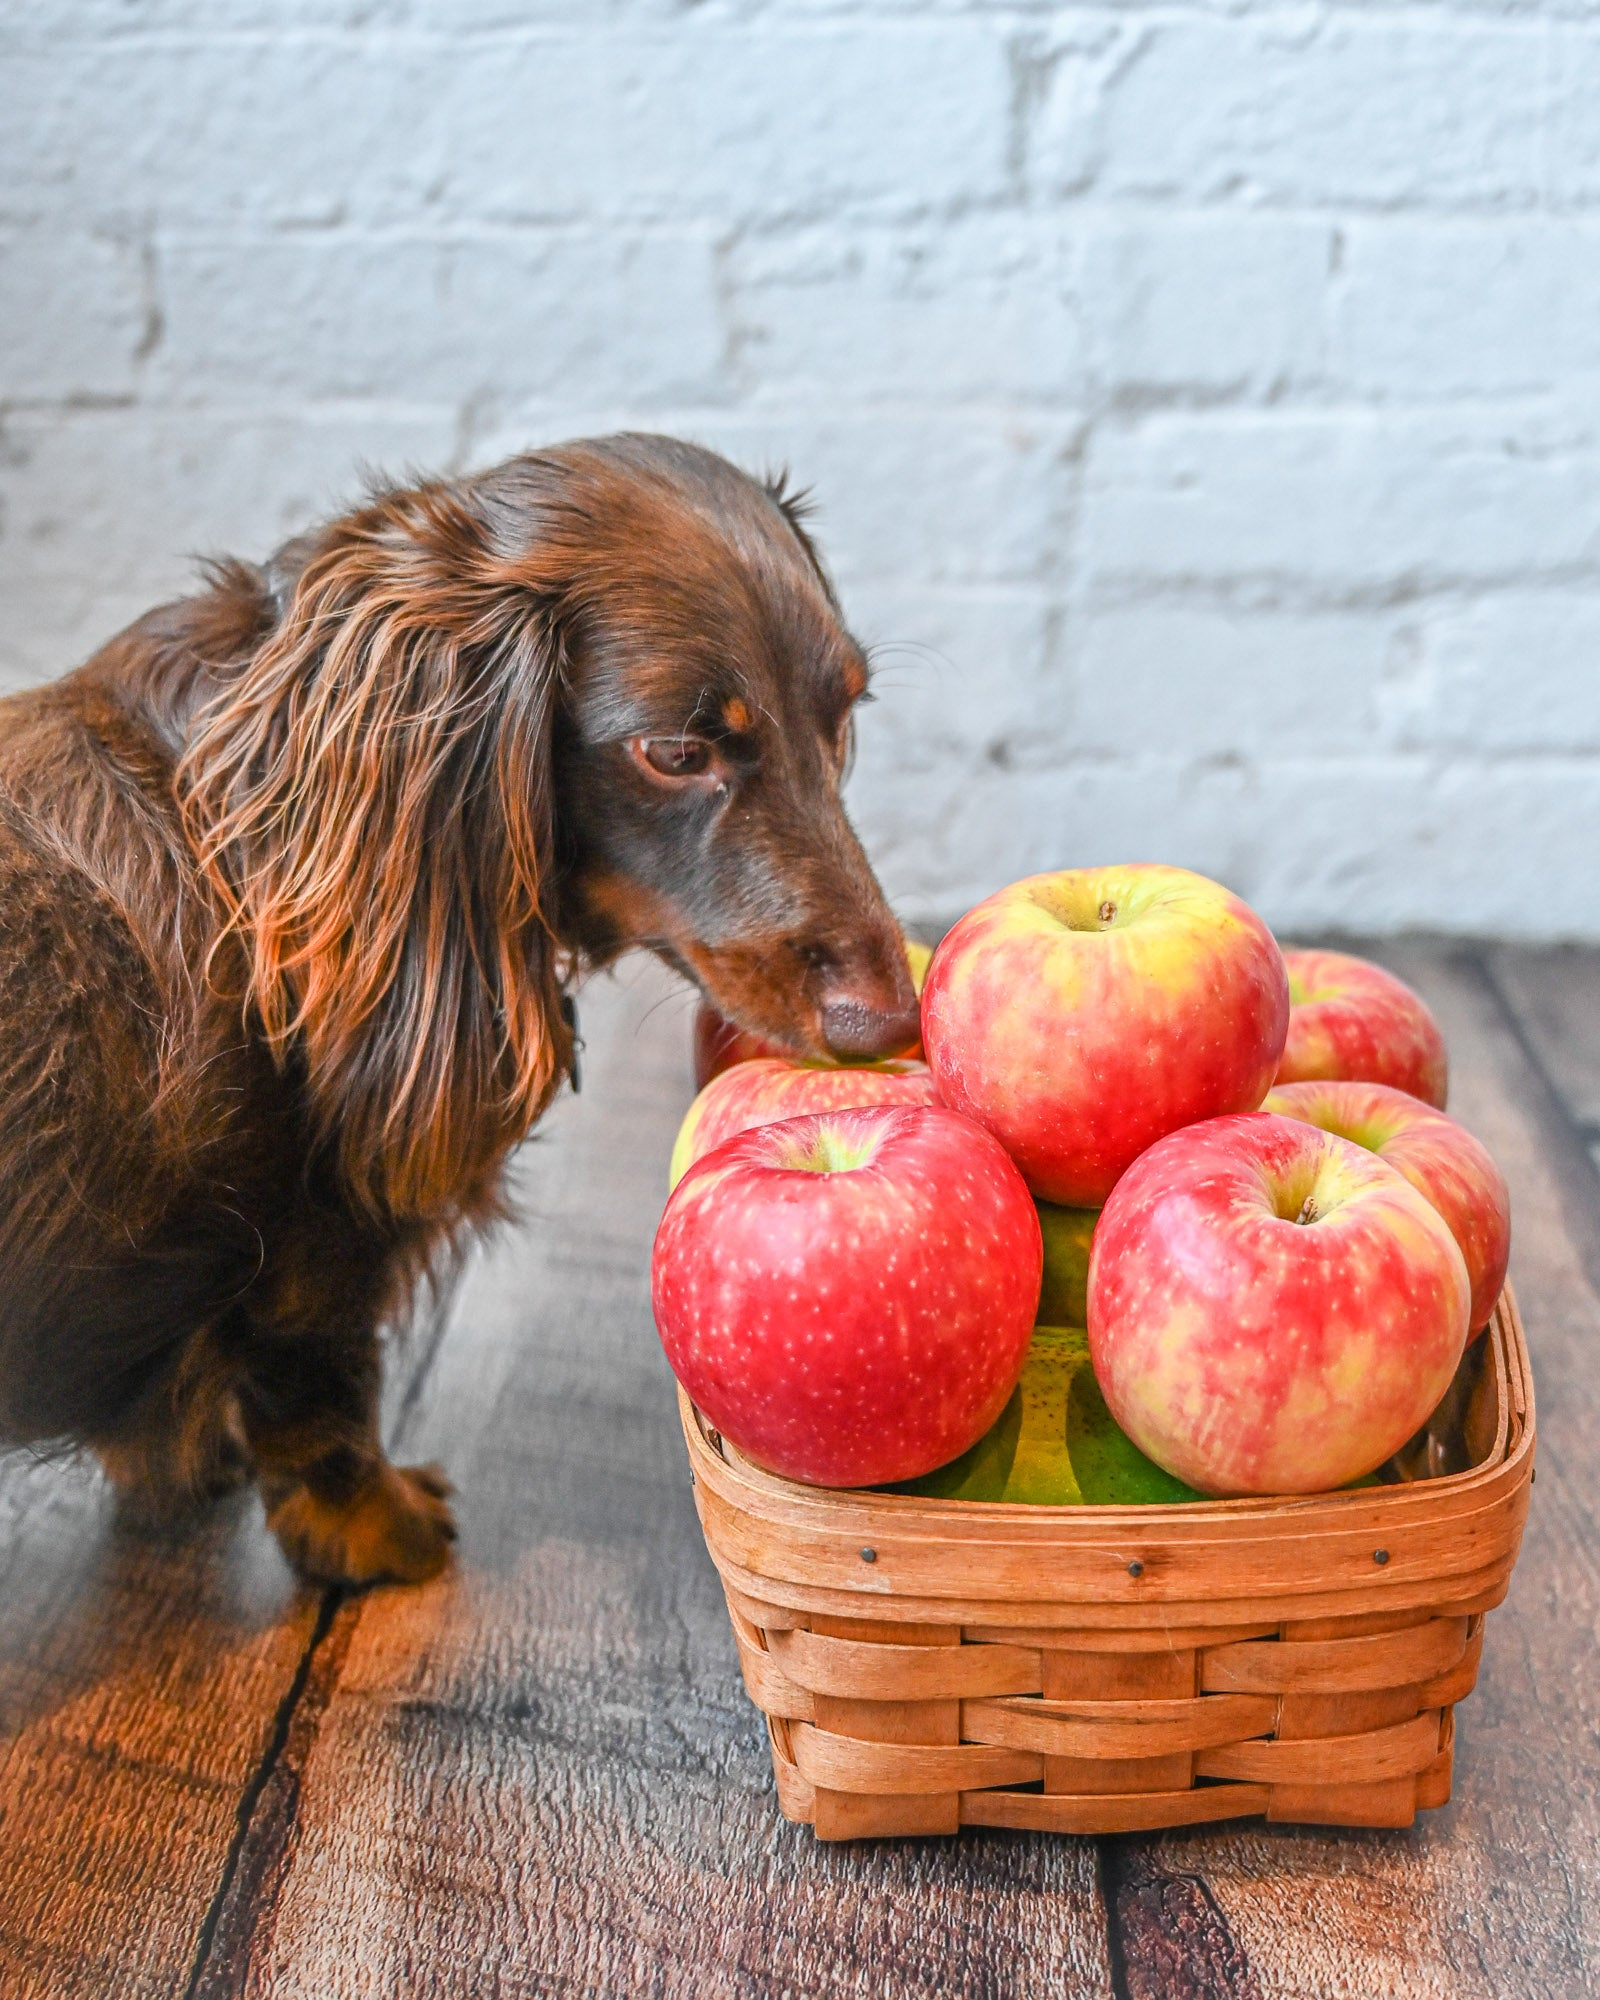 Dog with apples